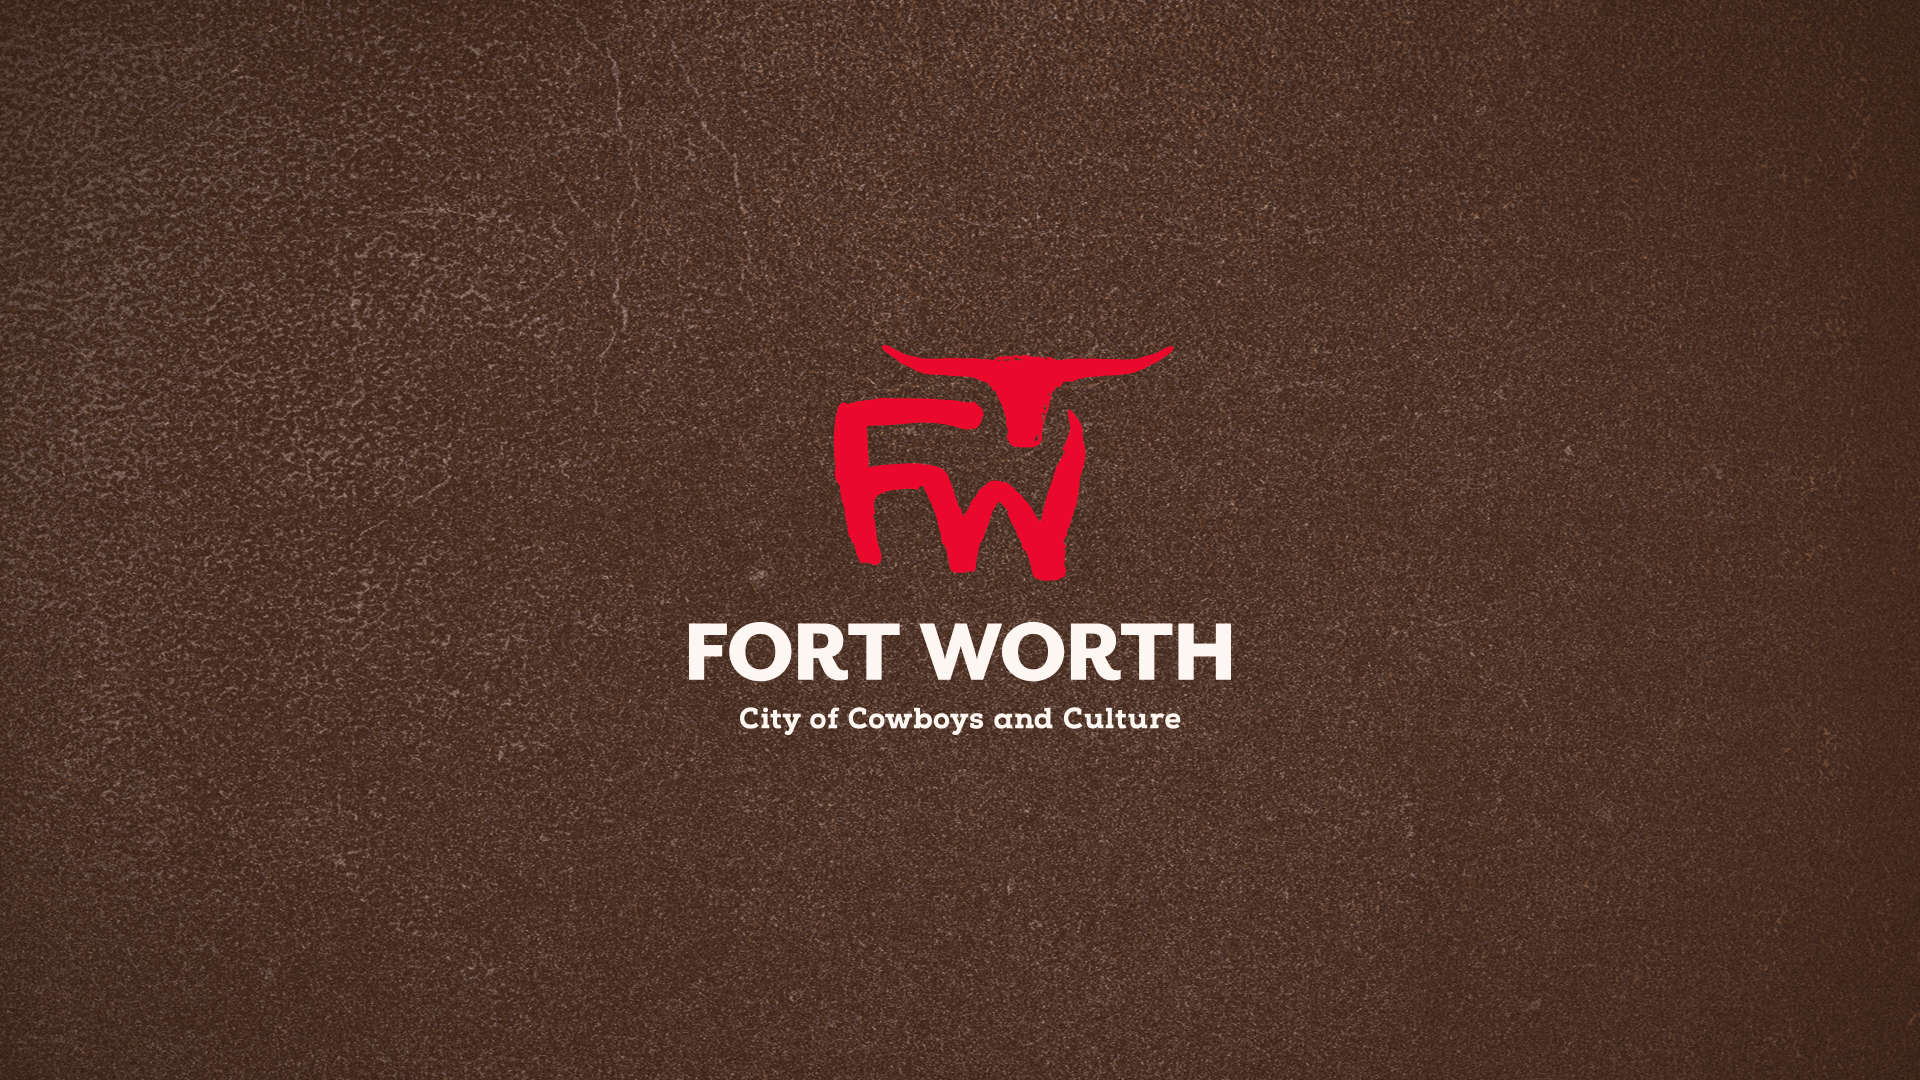 Design Bureau Llc Fort Worth Convention Visitors Bureau Pavlov Advertising